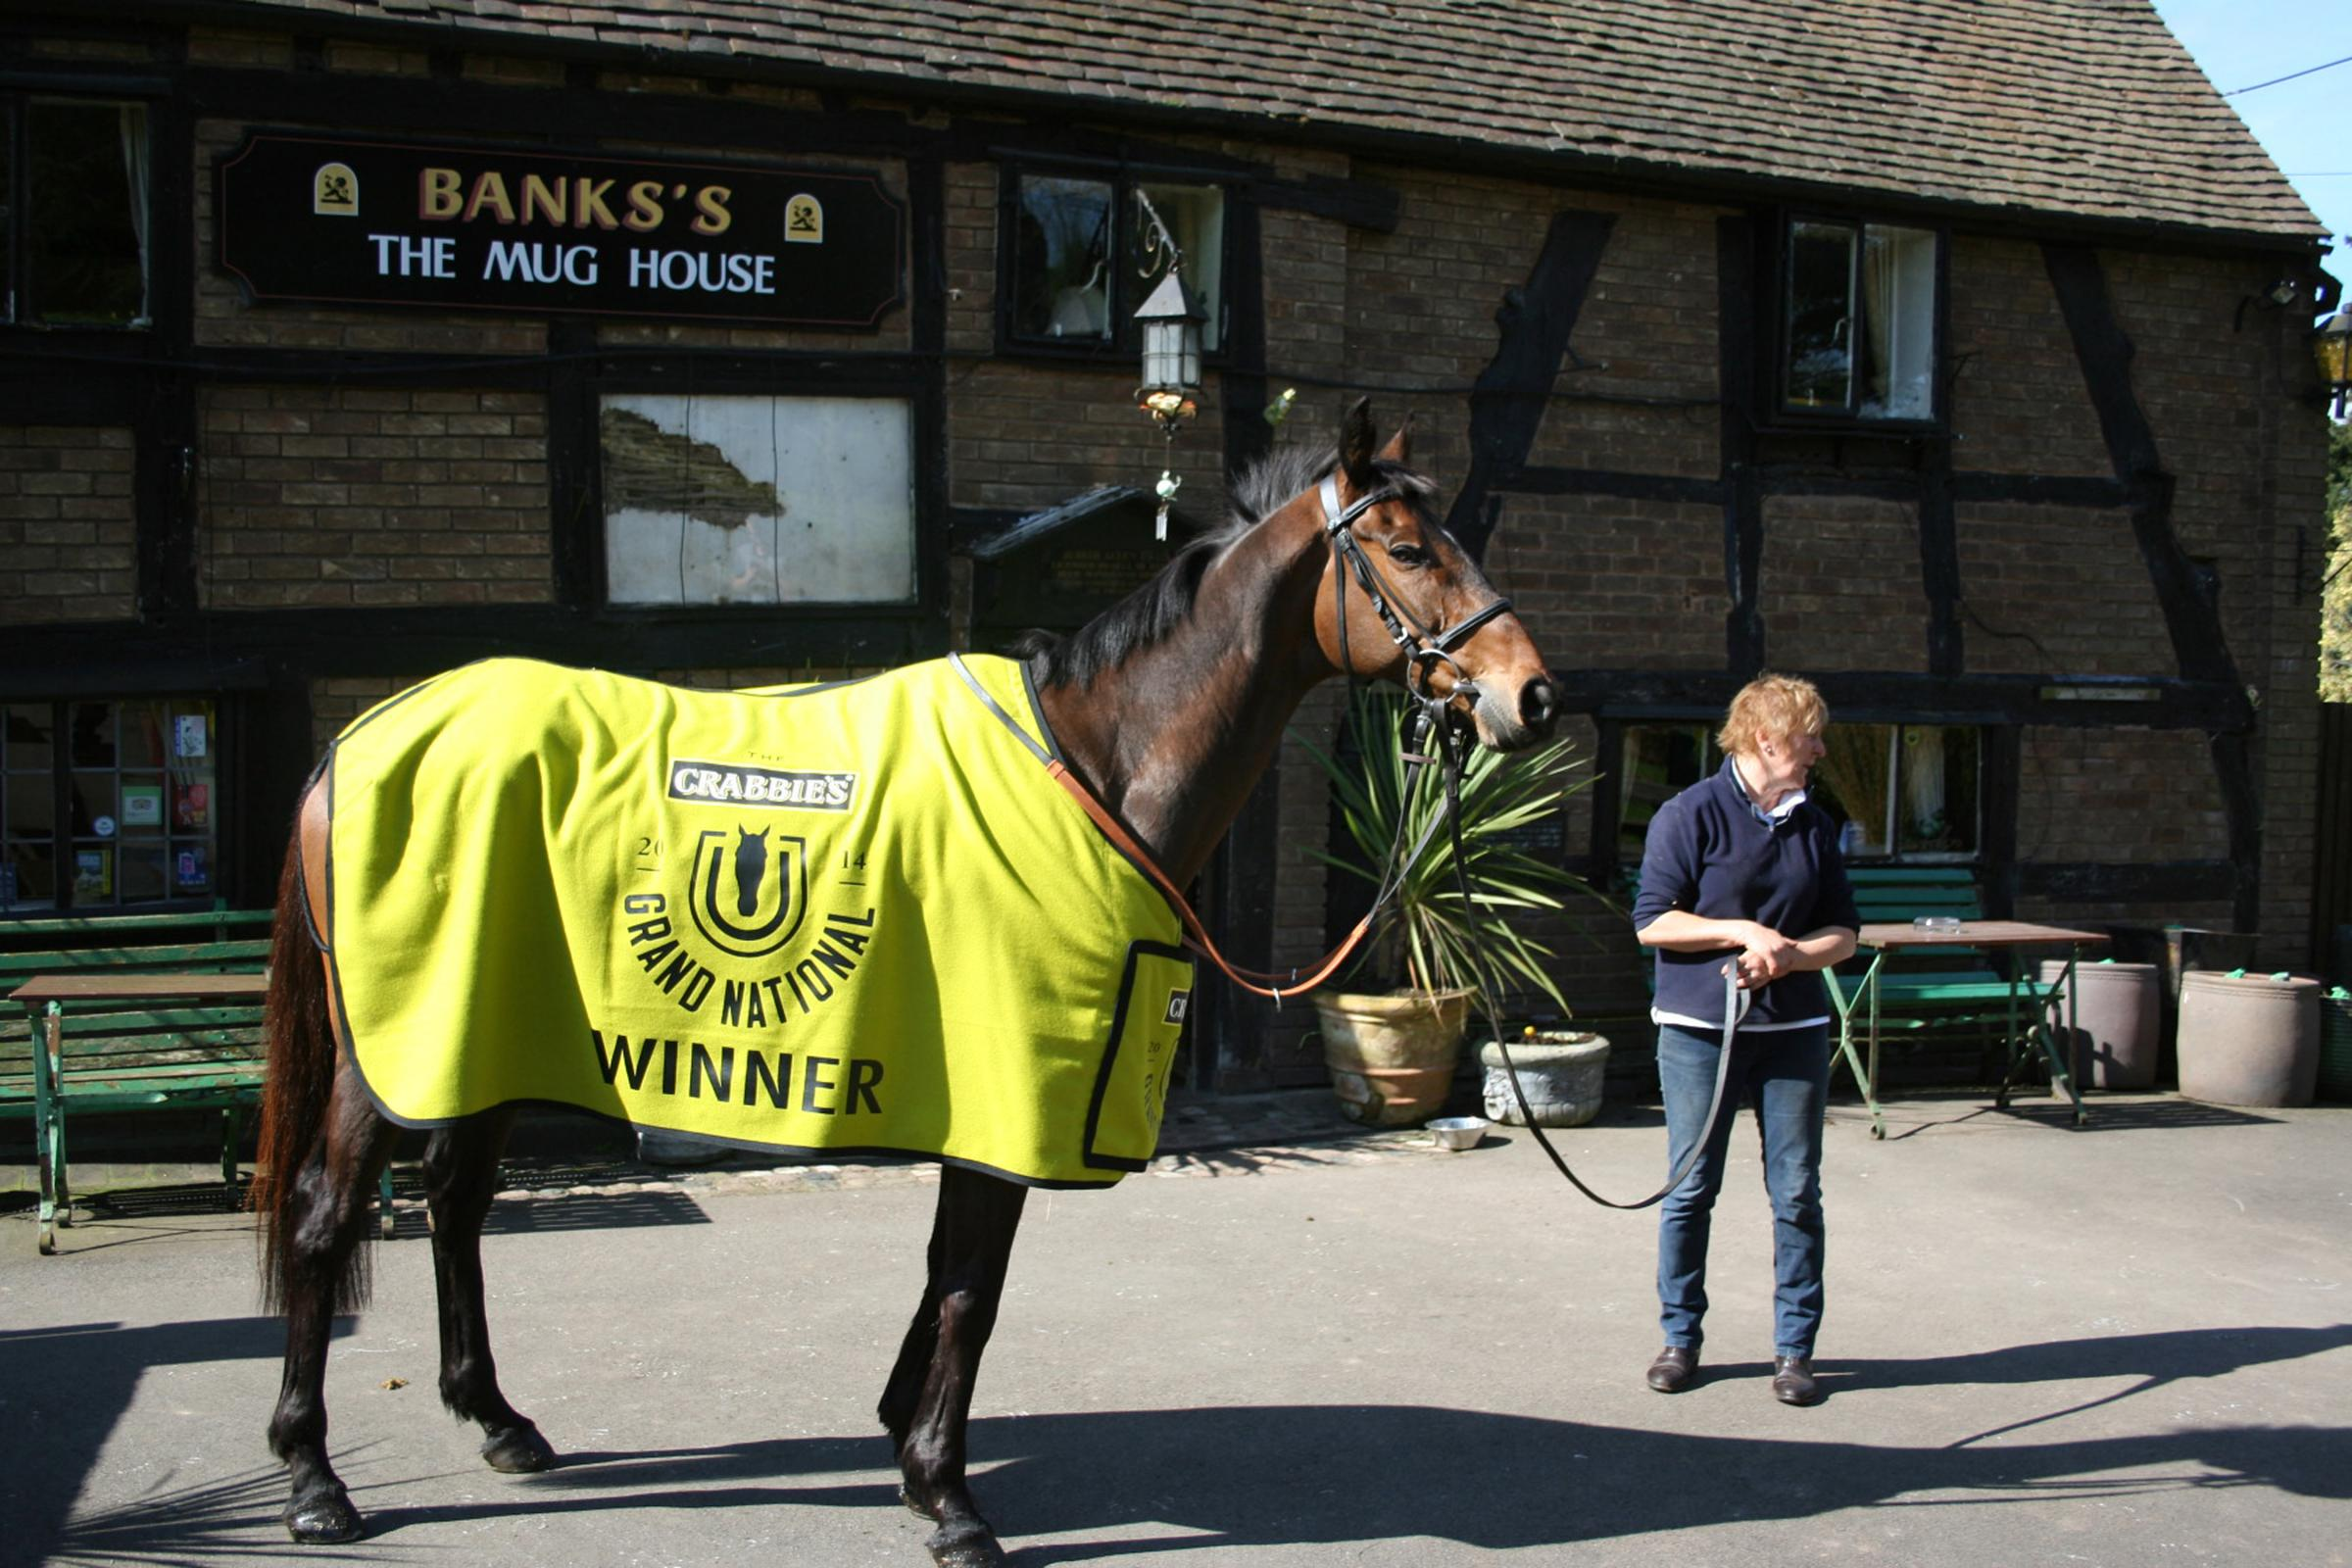 Forget the pinot grigio, it's Pineau De Re - Grand National winner outside The Mug House in Claines. Picture by Christopher Hughes (www.christopherhughesartist.co.uk)